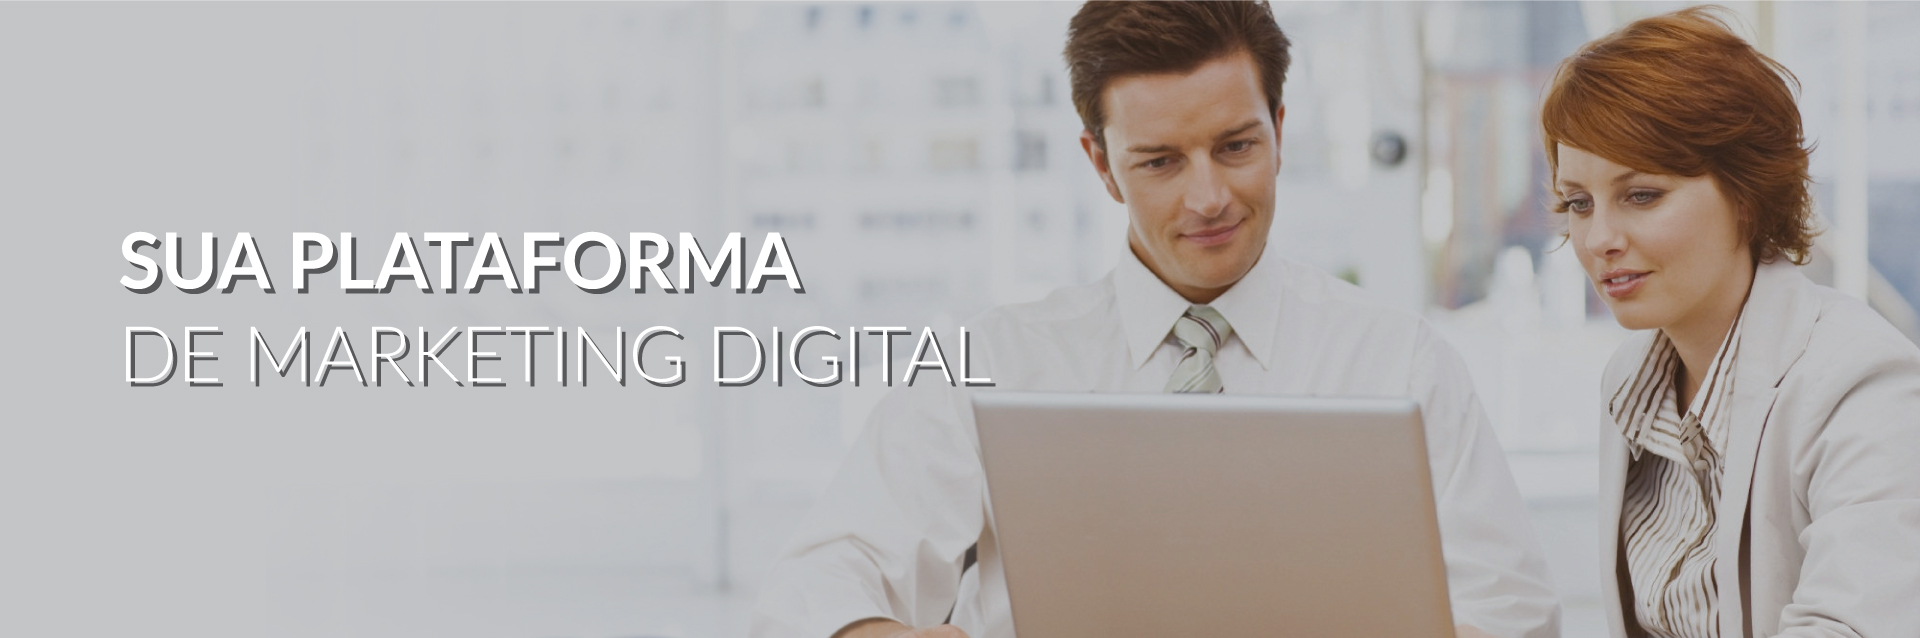 sua_plataforma_de_marketing_digital